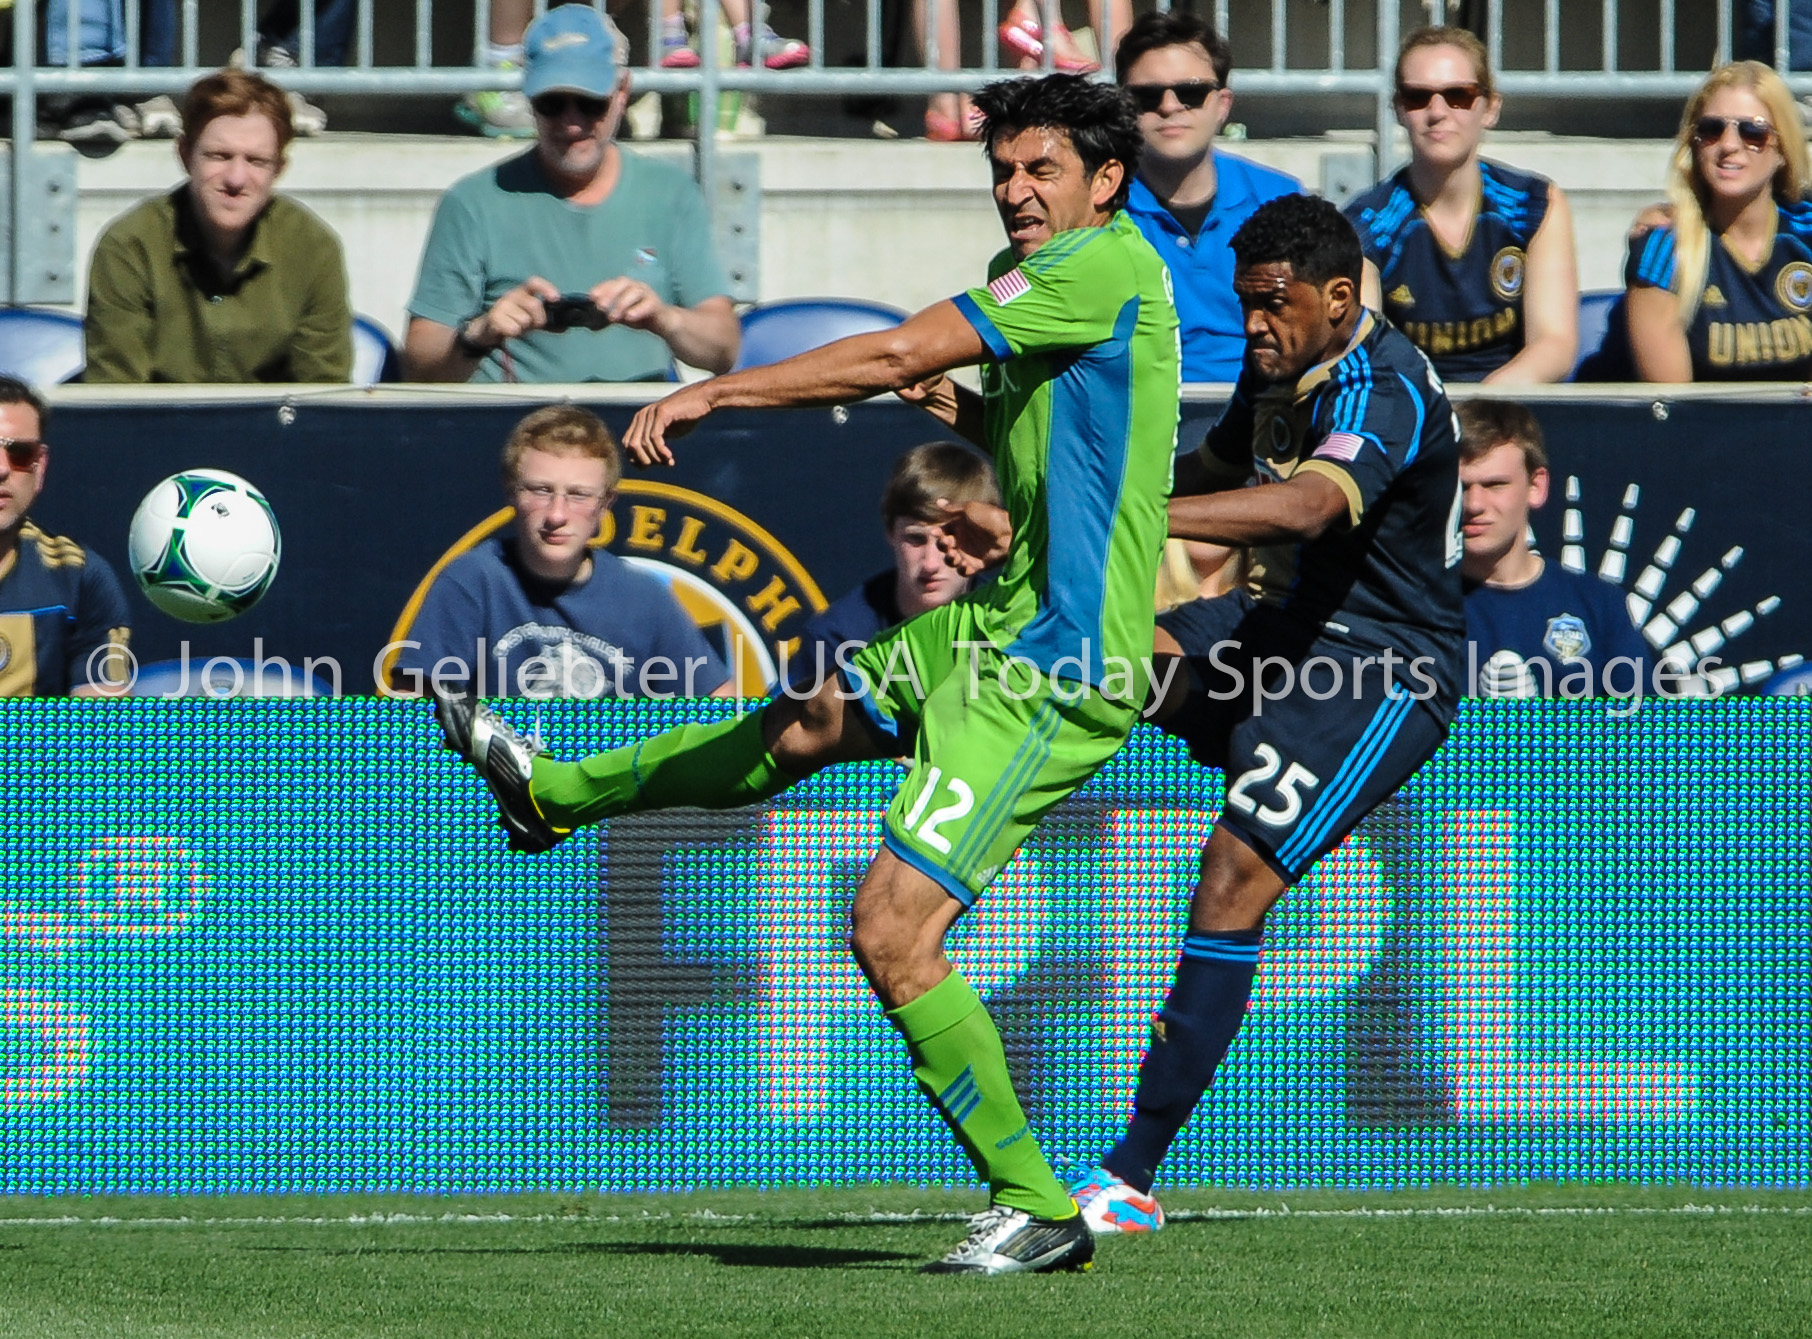 Sounders_Union_May_4_2013_JAG0439.jpg